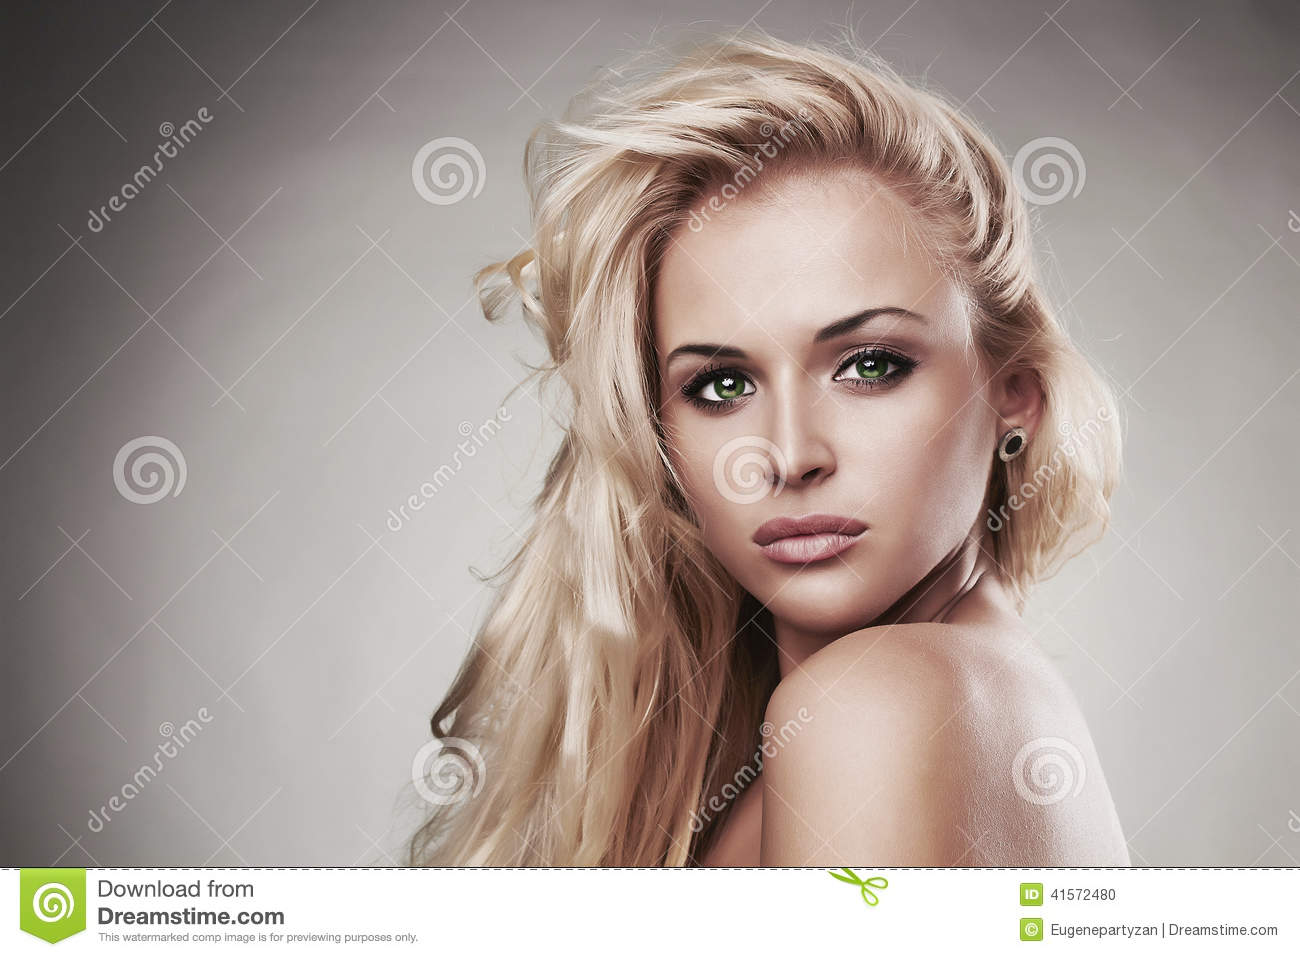 Sensitive Beautiful blond woman.hairstyle.salon care.sexy young girl. close-up portrait. green eyes